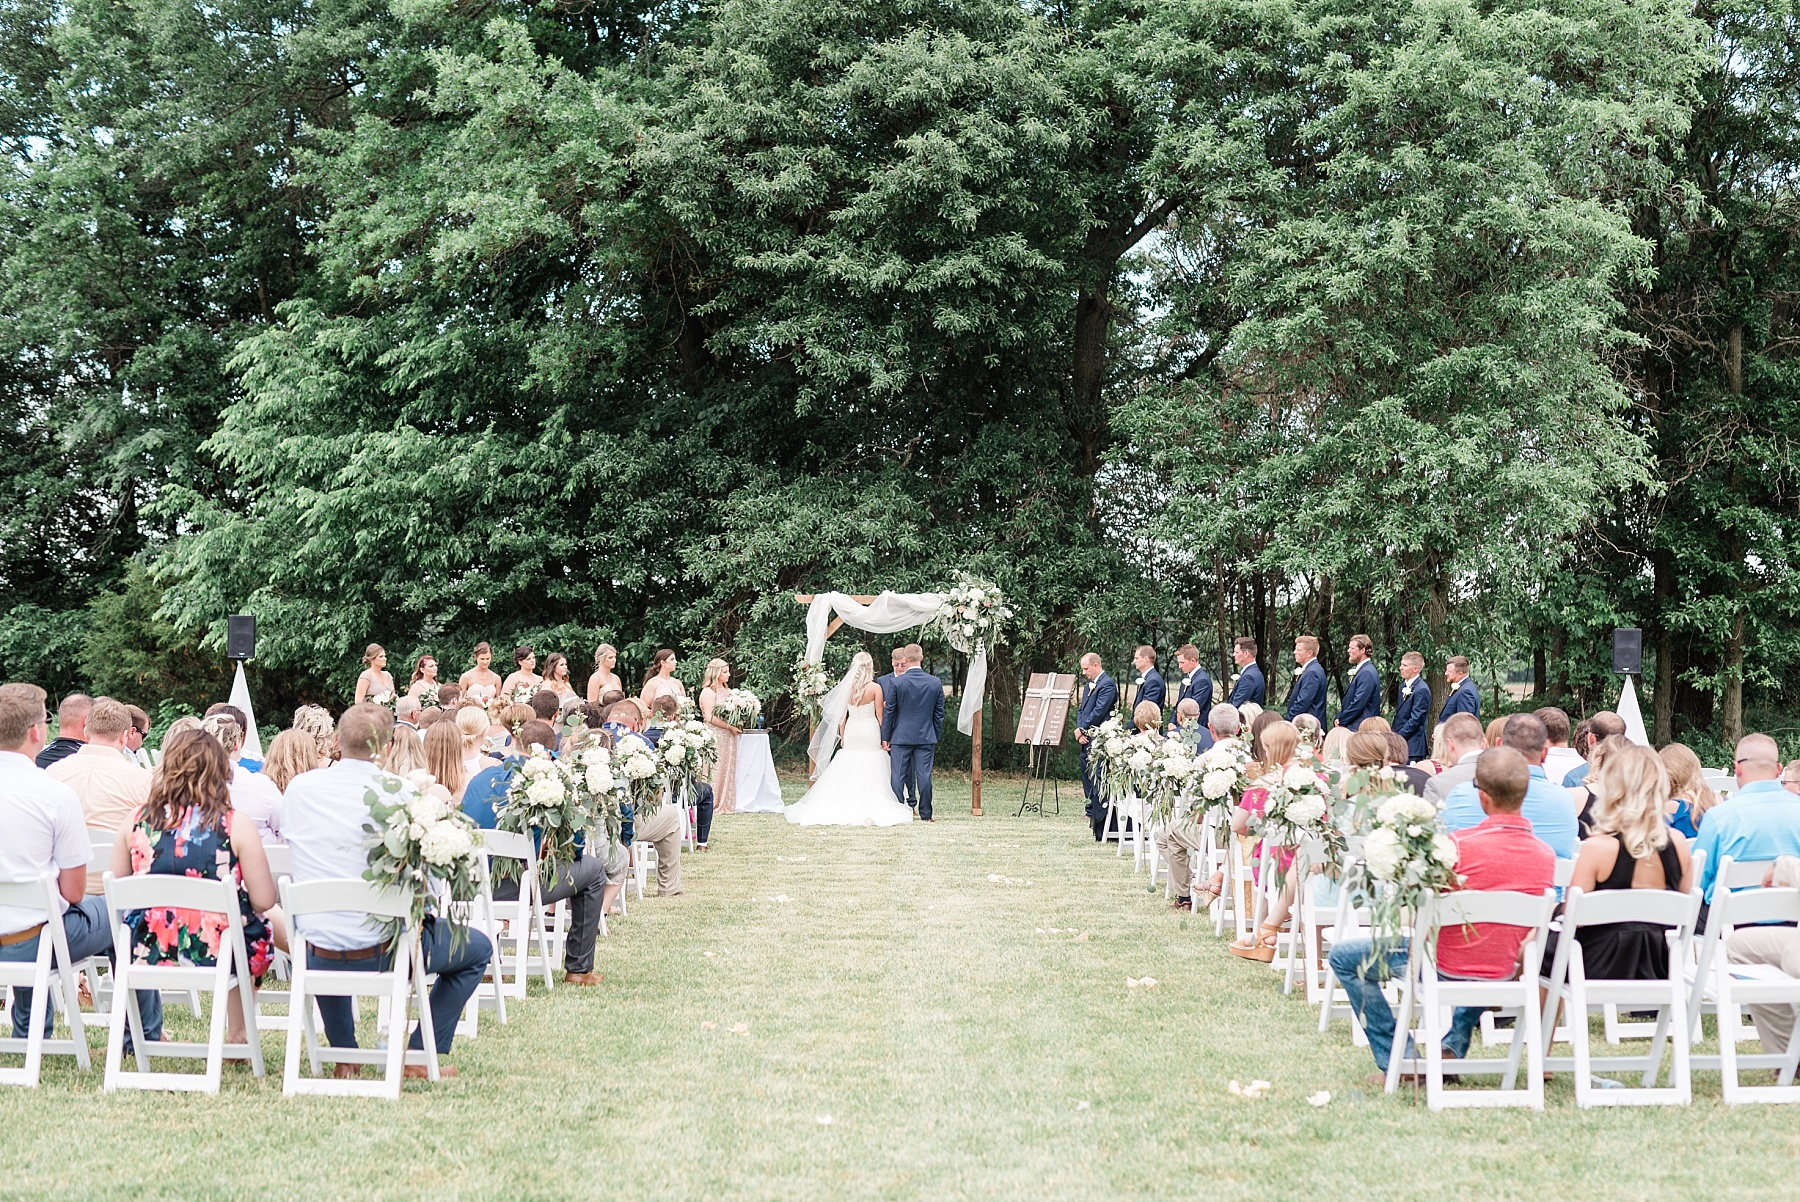 Stunning Heartfelt, Elegant, Fine Art, Chic, Outdoor Spring Wedding with Blush, Cream, Greenery, Rose Gold, and Sequins at Emerson Fields Venue by Kelsi Kliethermes Photography_0050.jpg